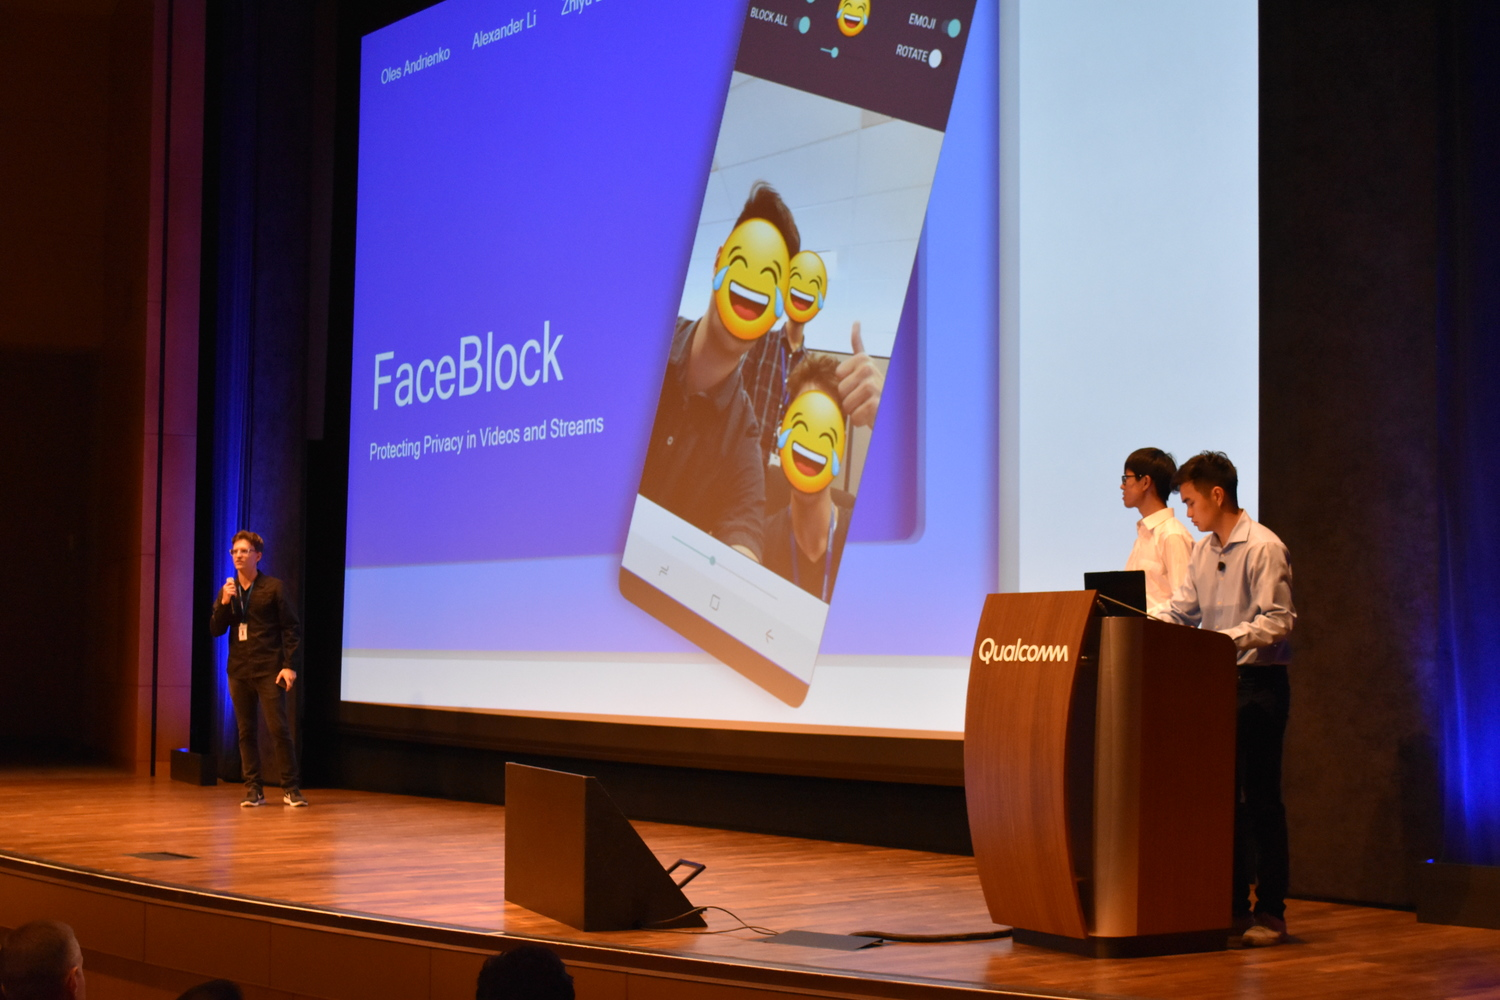 The team presenting FaceBlock